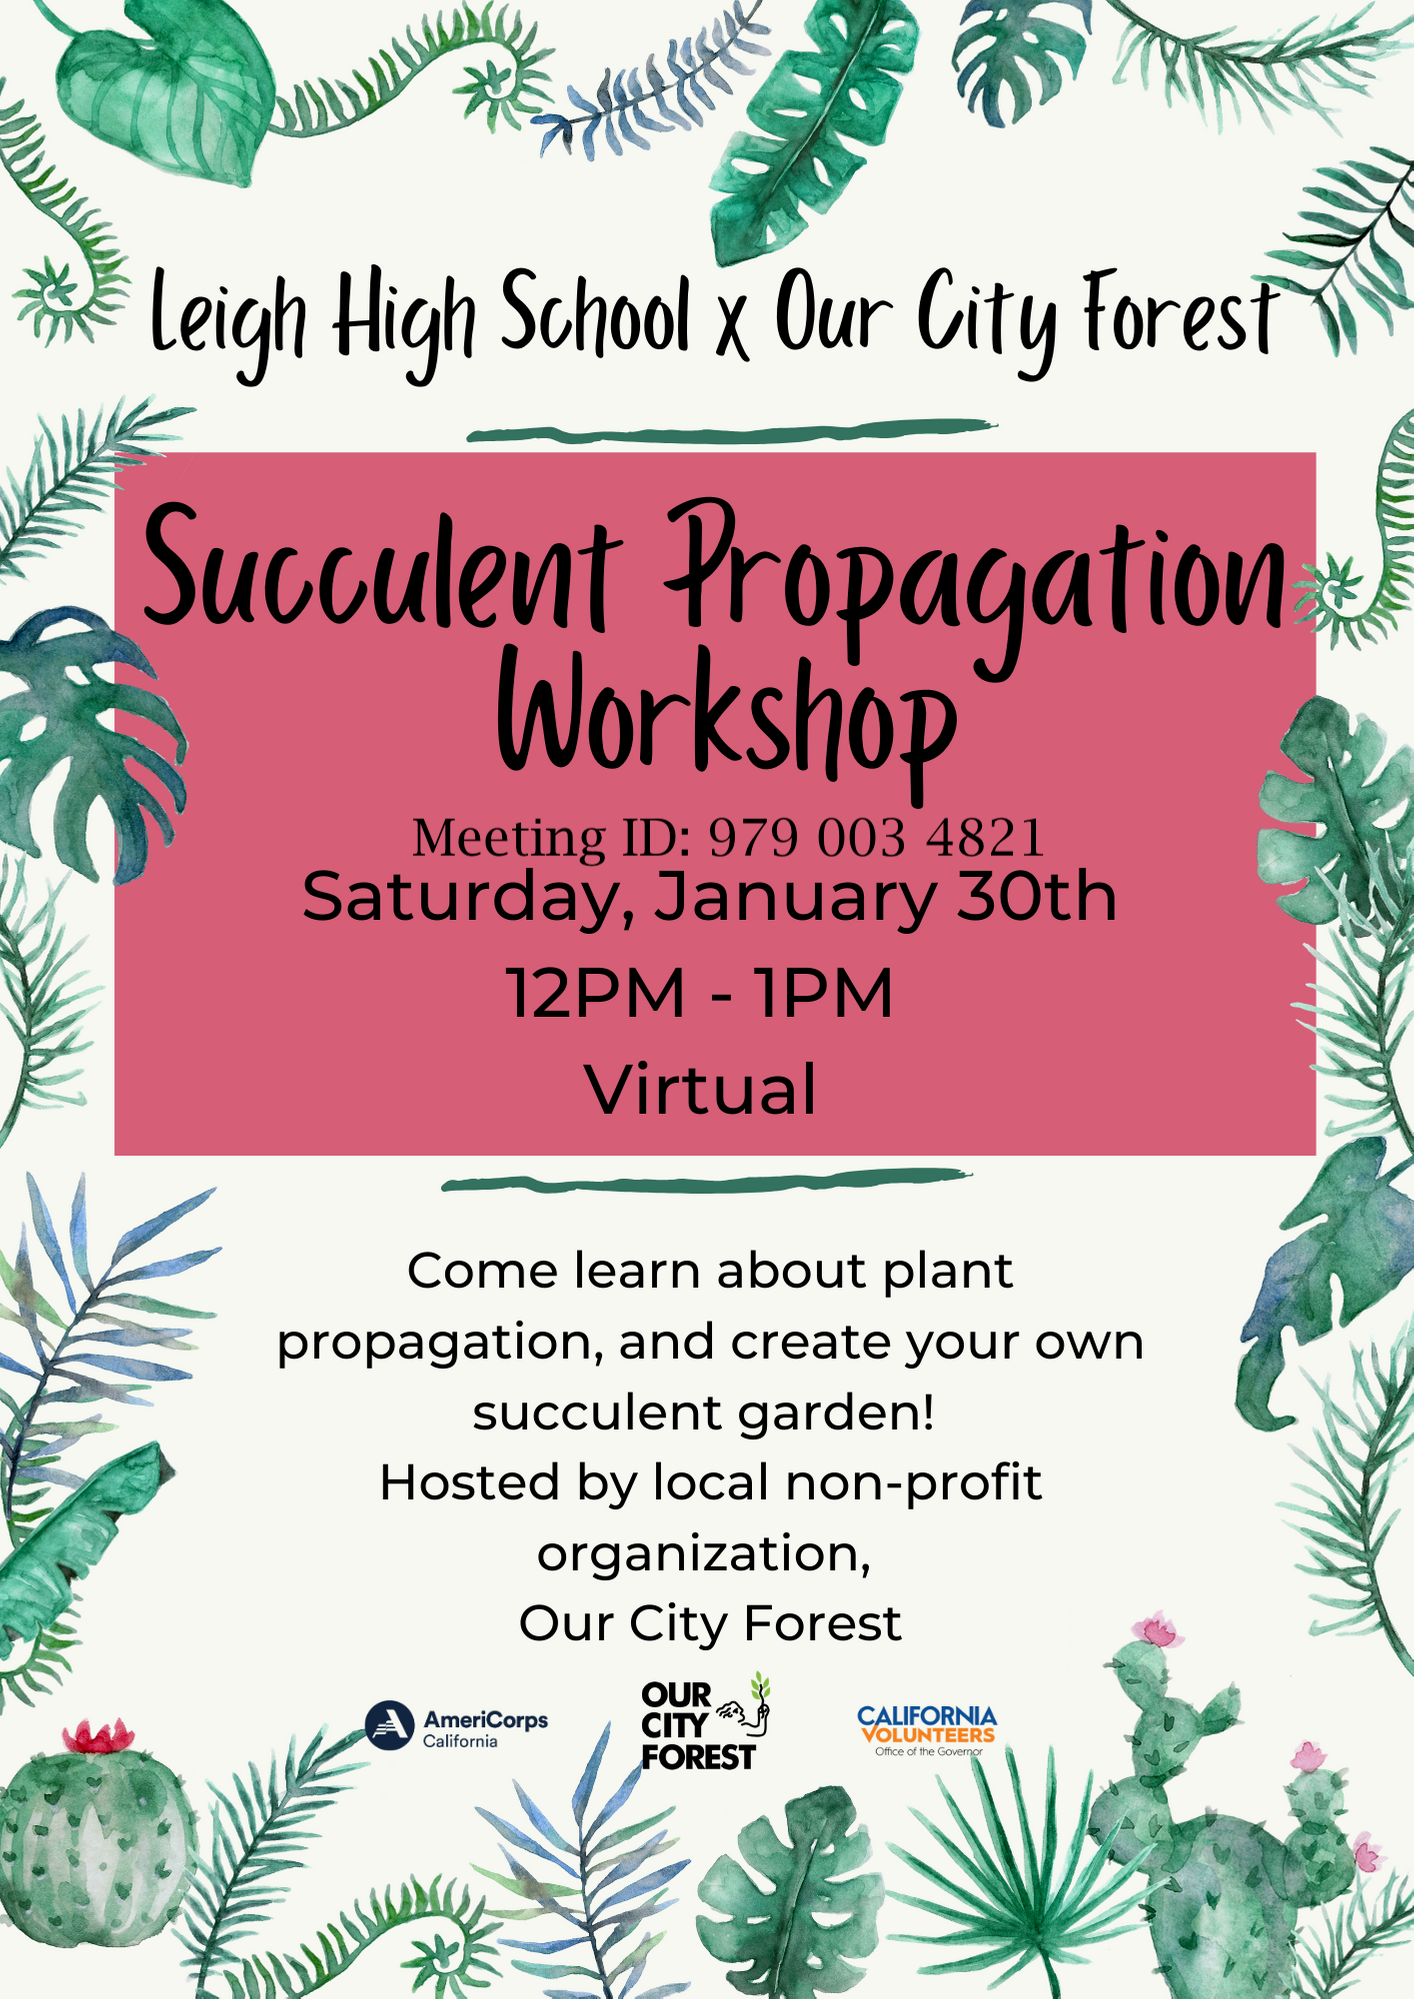 Succulent Propagation Workshop